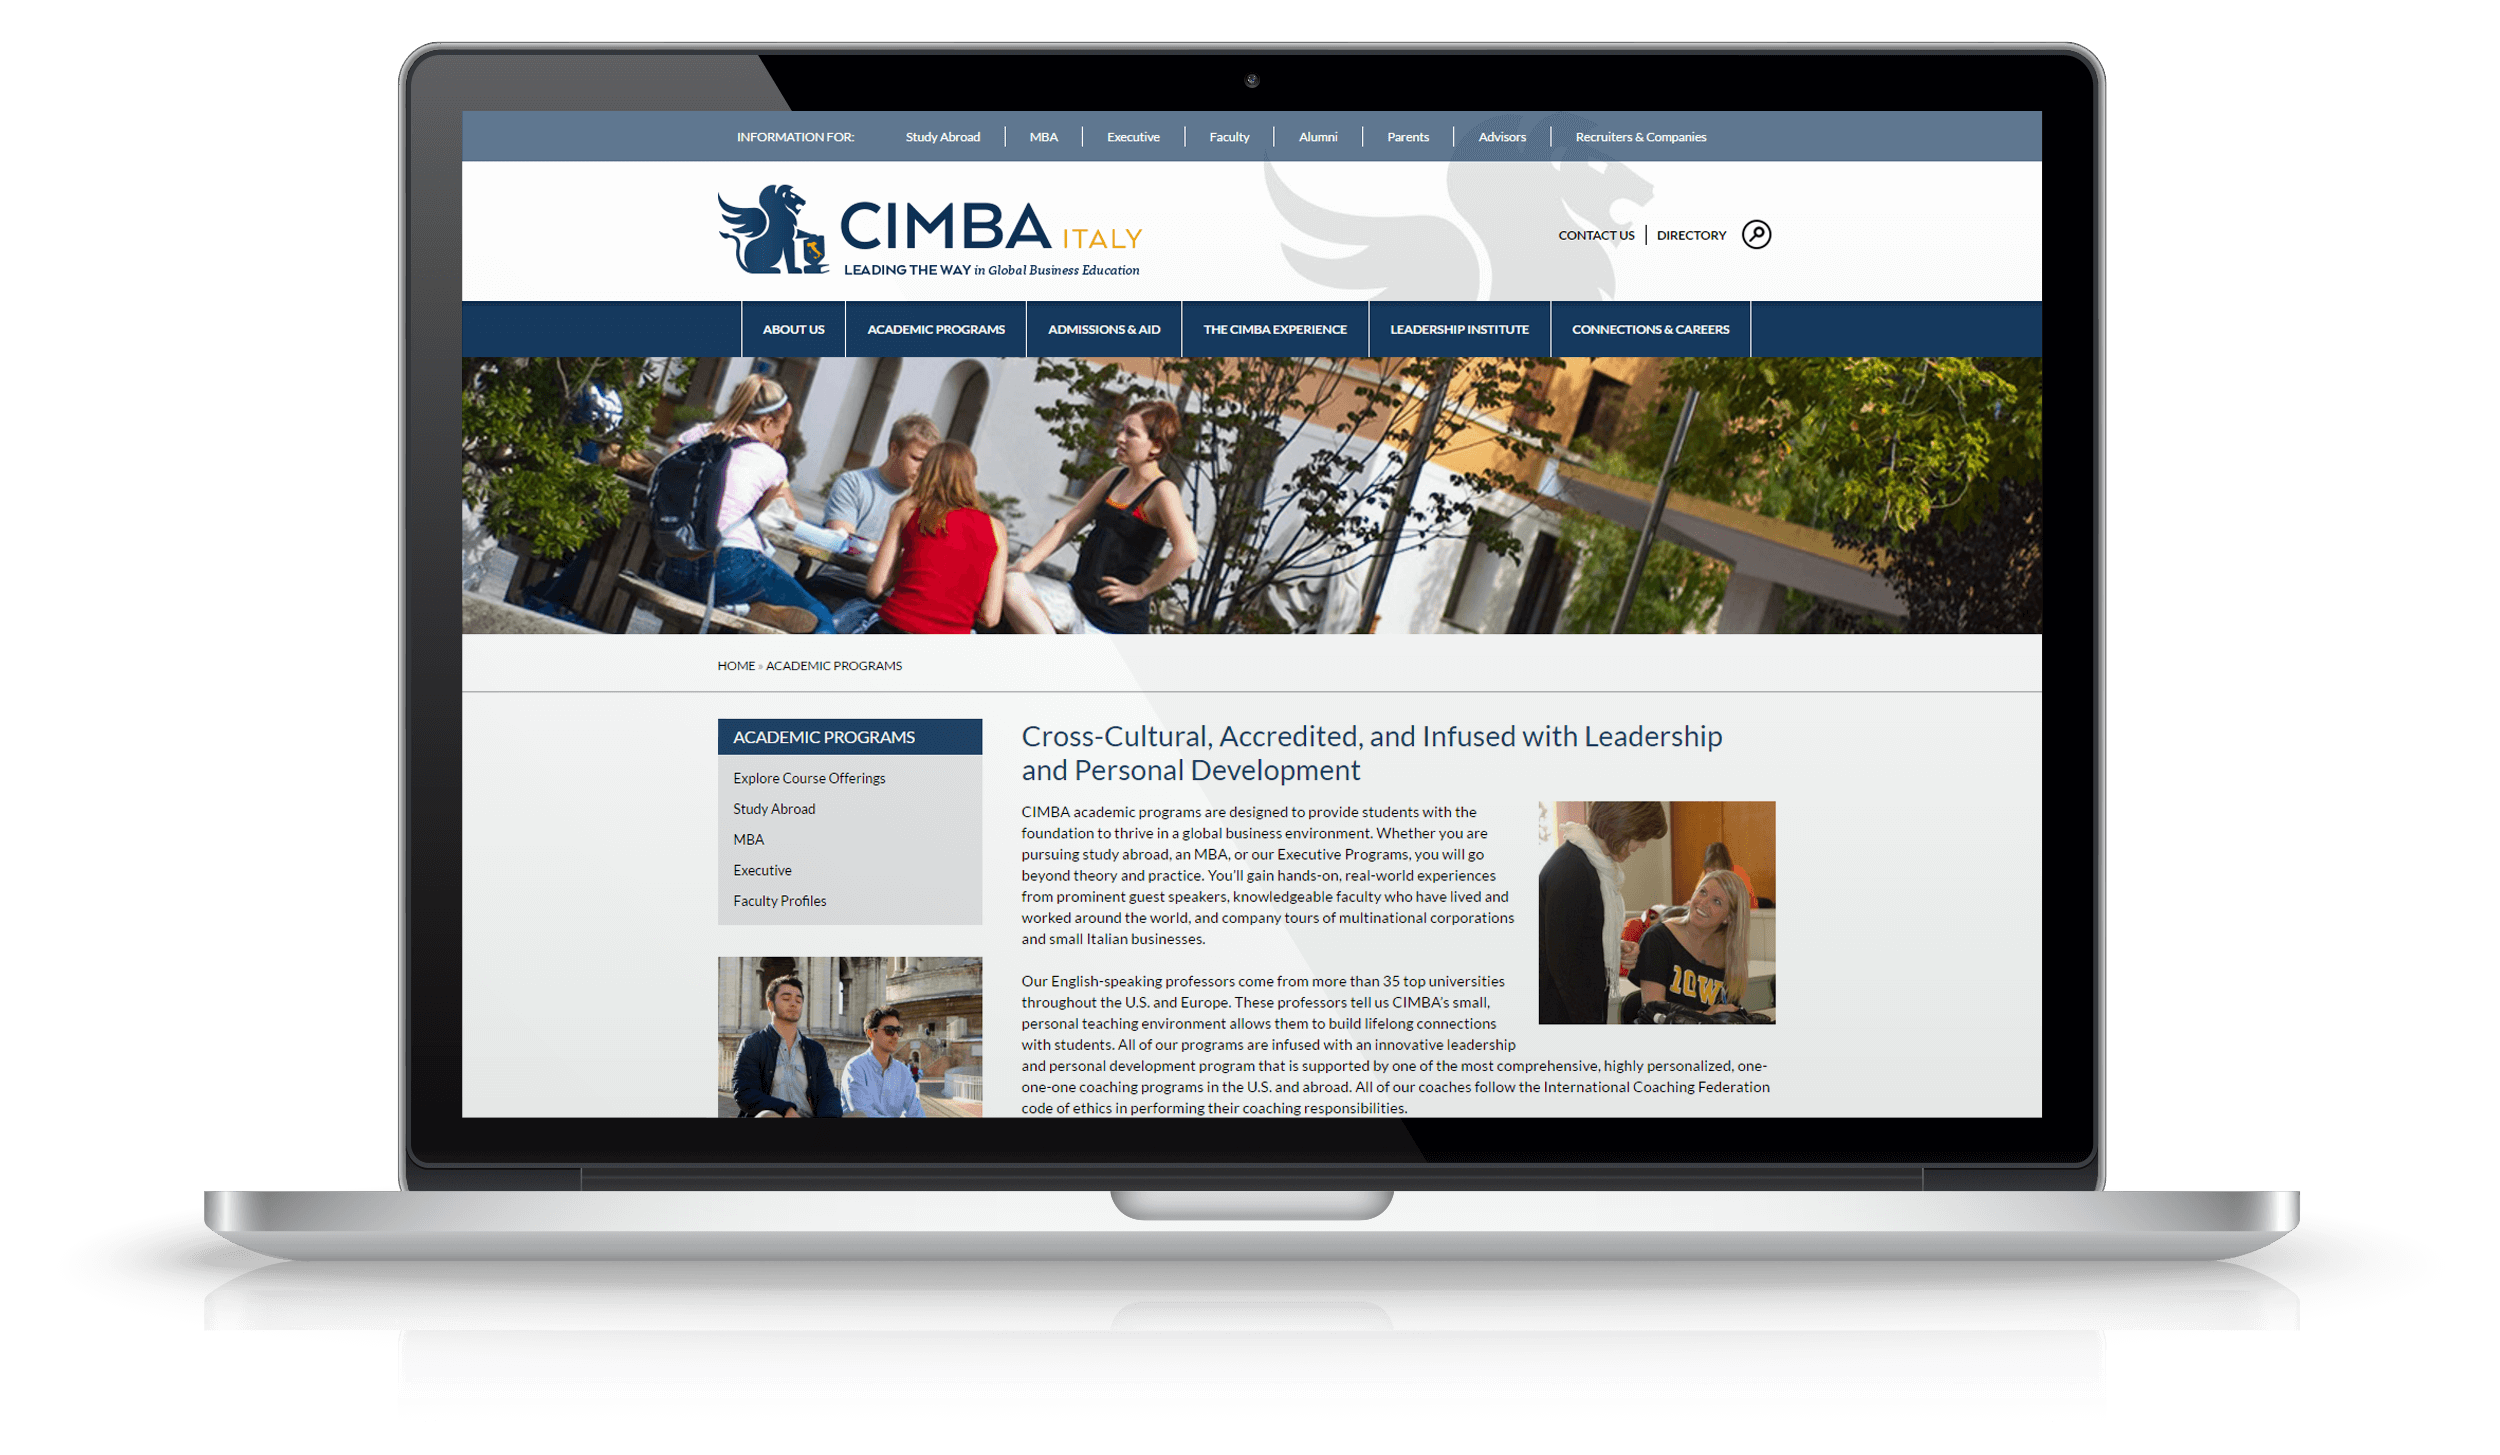 Pixelnation Project: CIMBA Italy Website - Academic Page